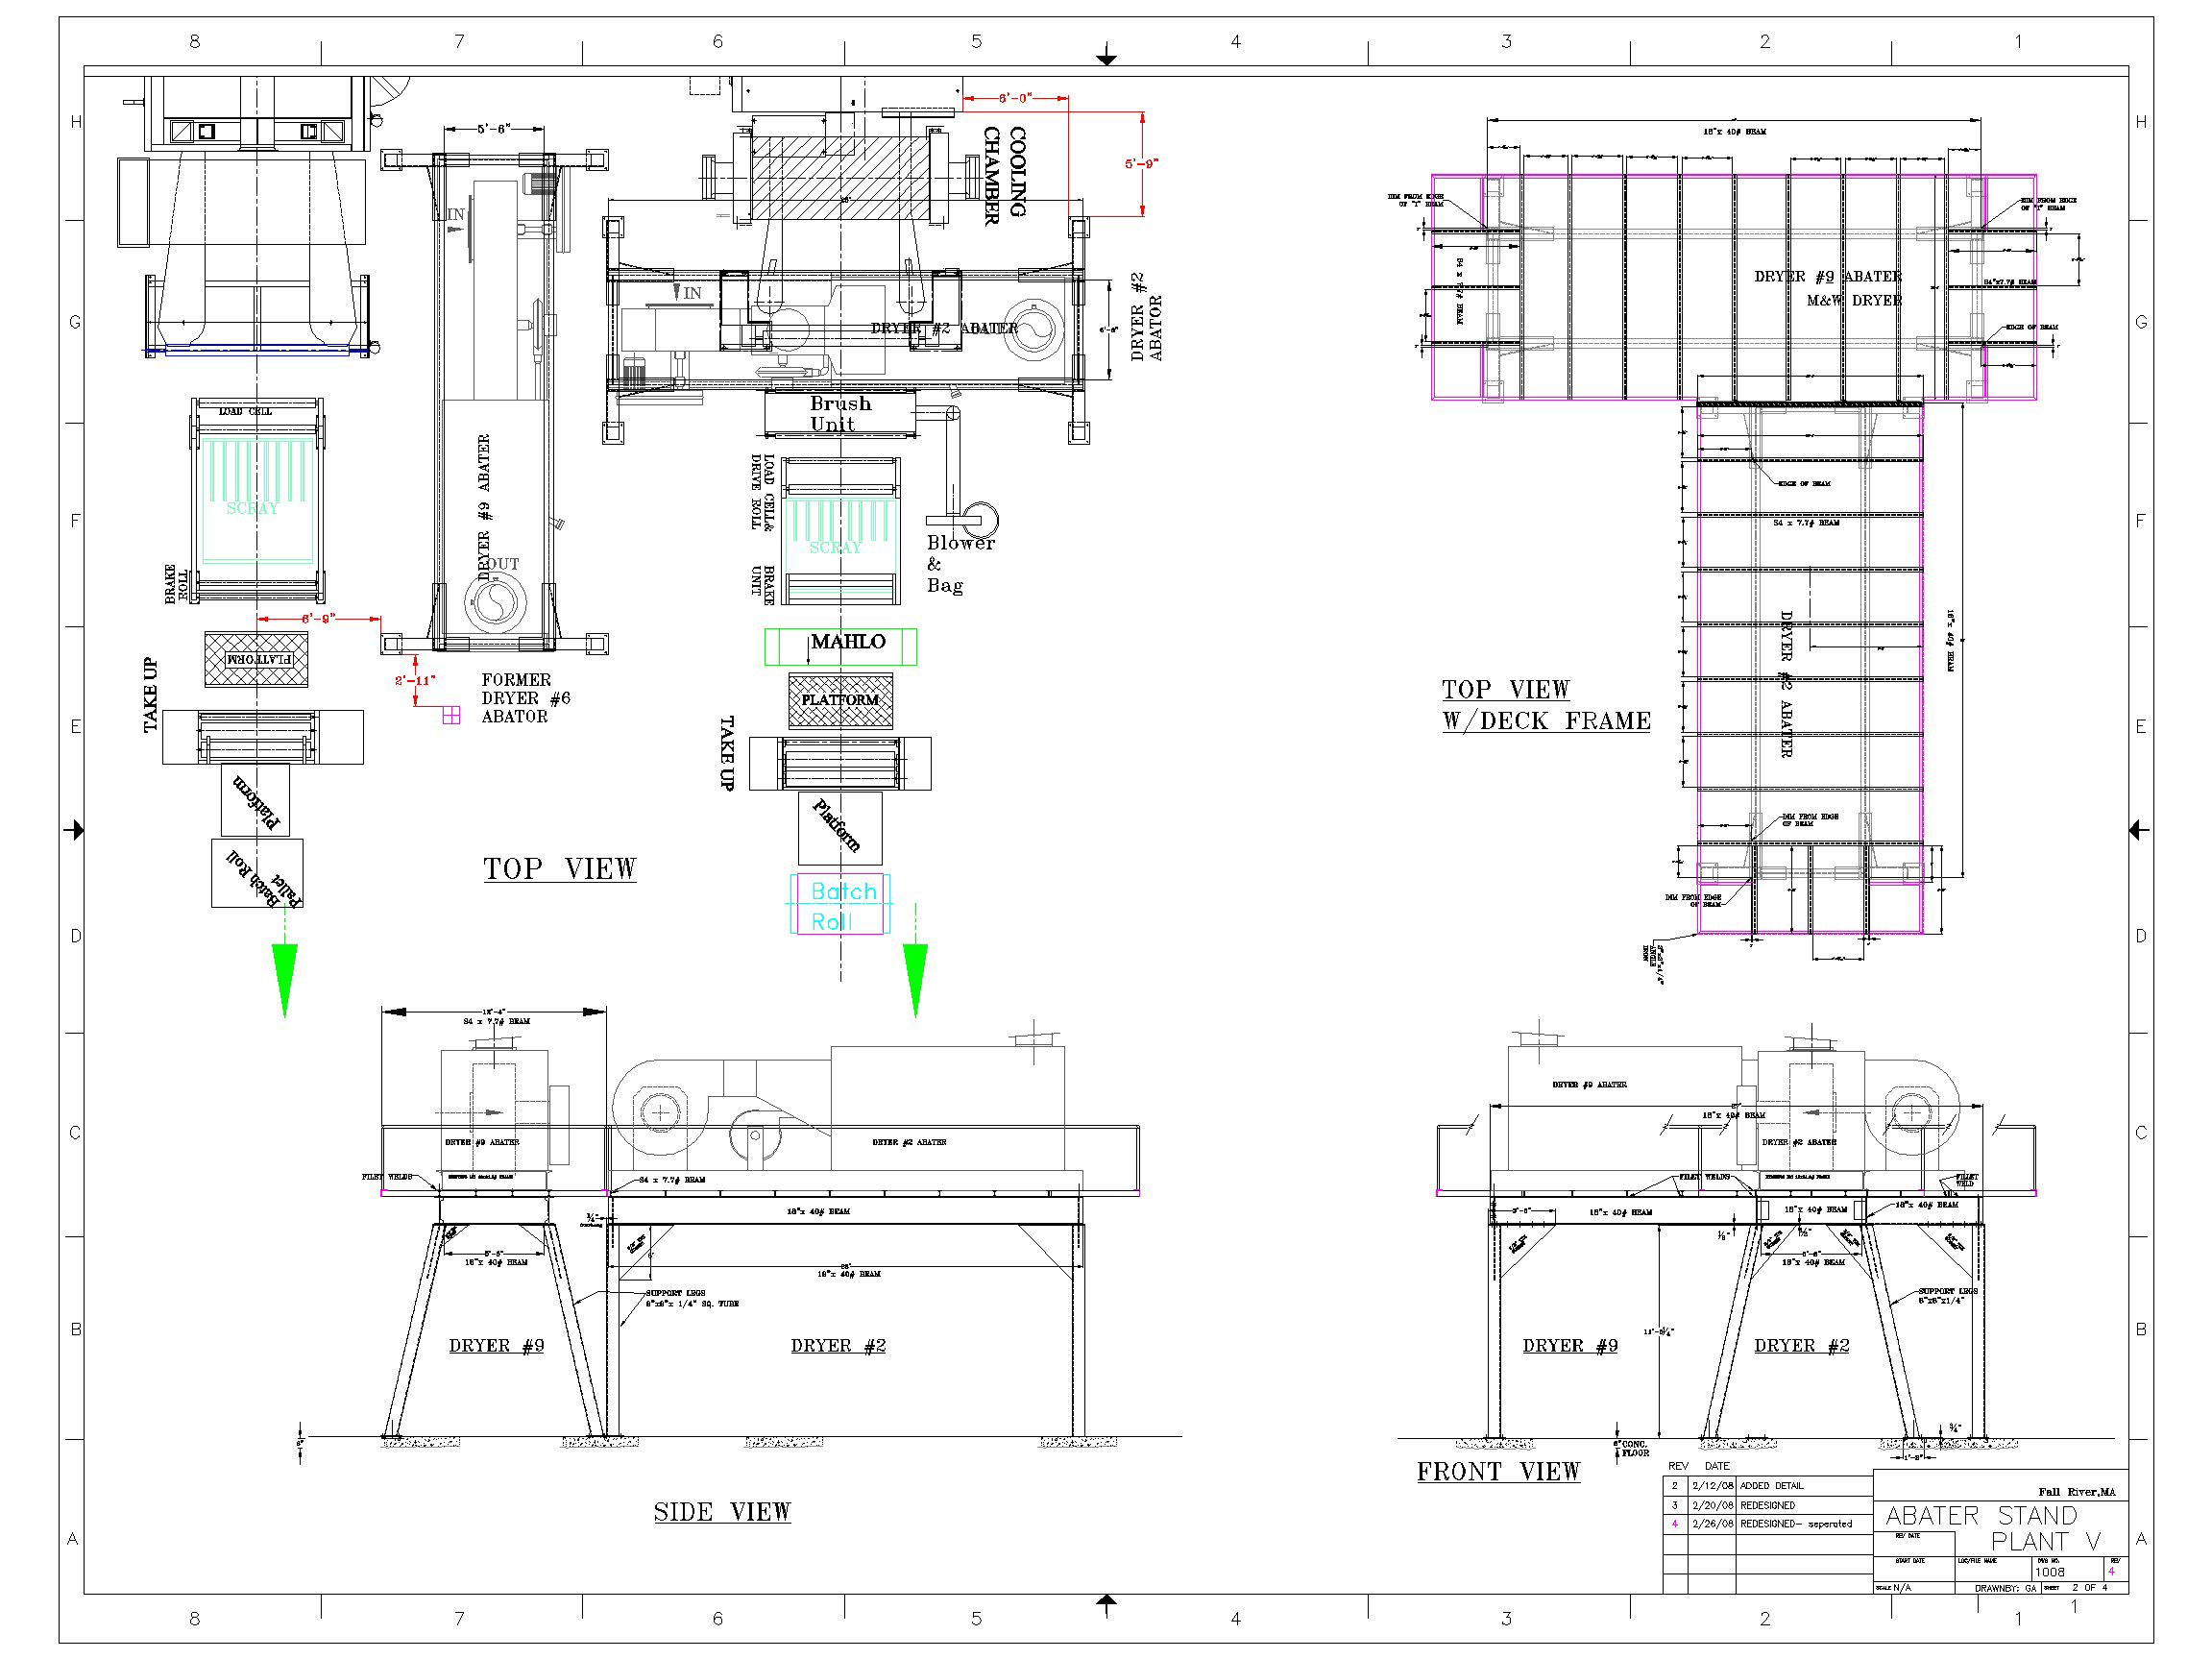 Andre Drafting and Design Services image 0